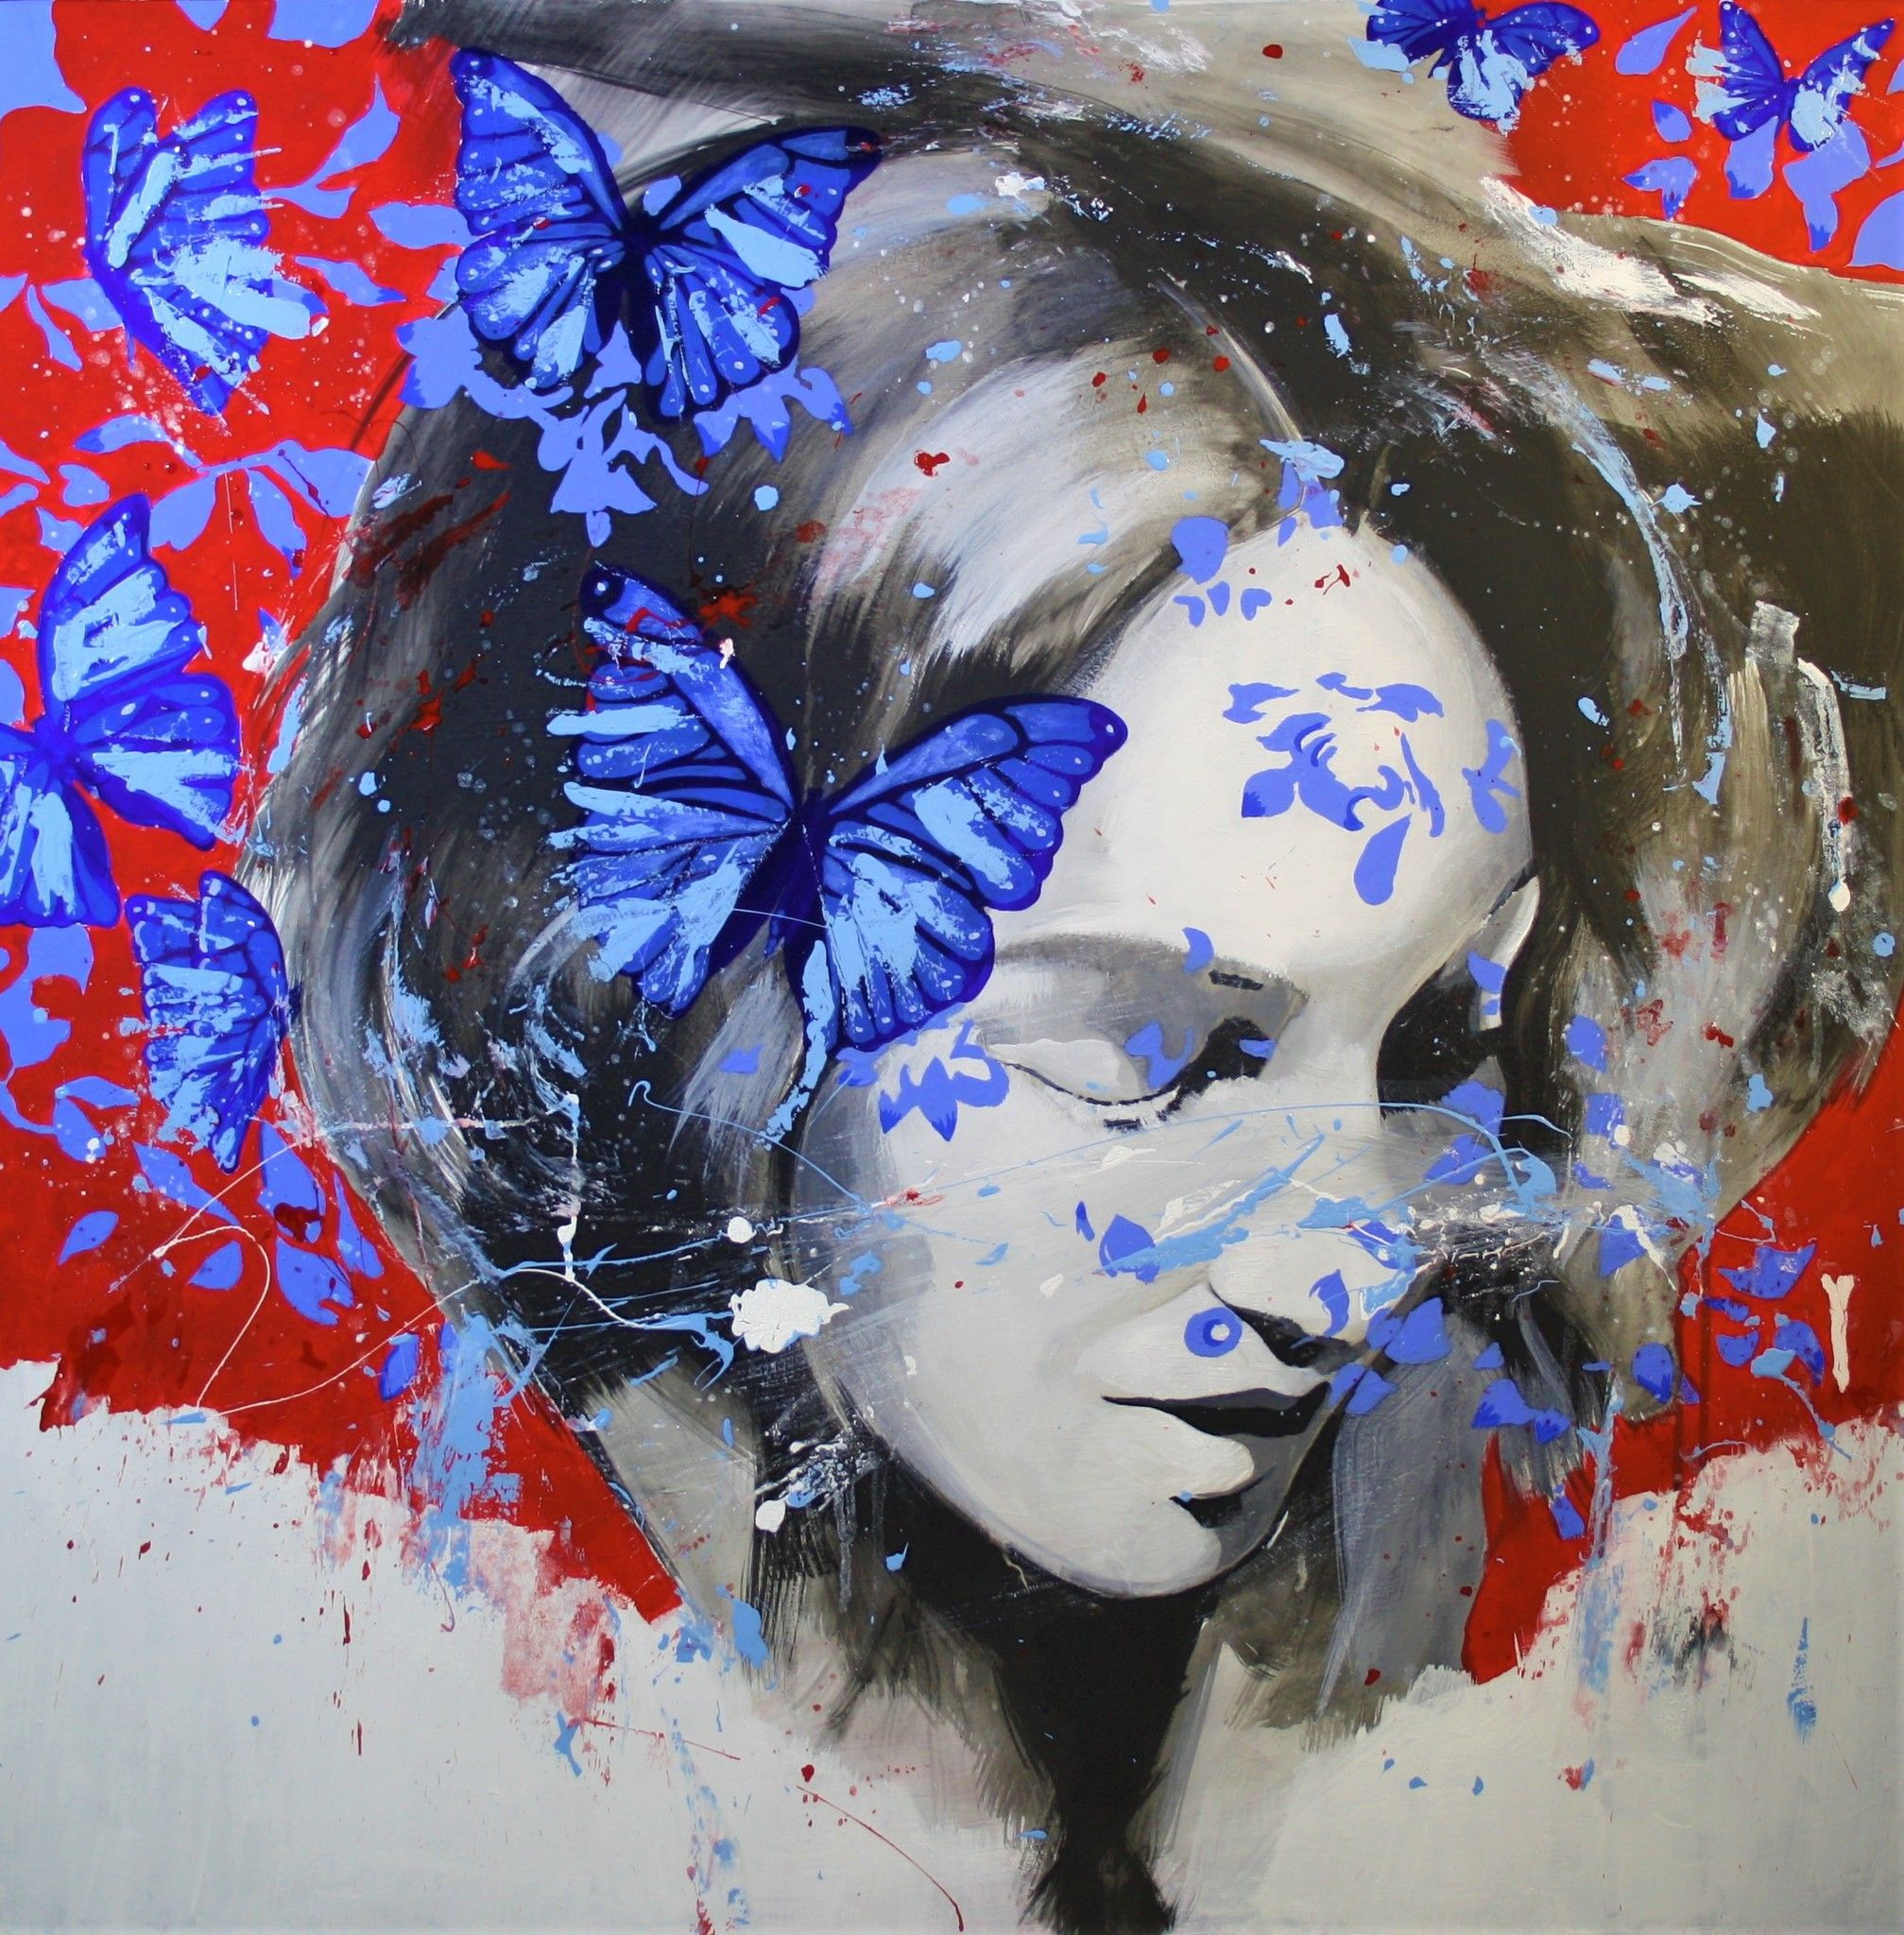 MIXED MEDIA MASSIMO PENNACCHINI ' BUTTERFLY WOMAN ' dimensioni L 90 x H 90 cm.